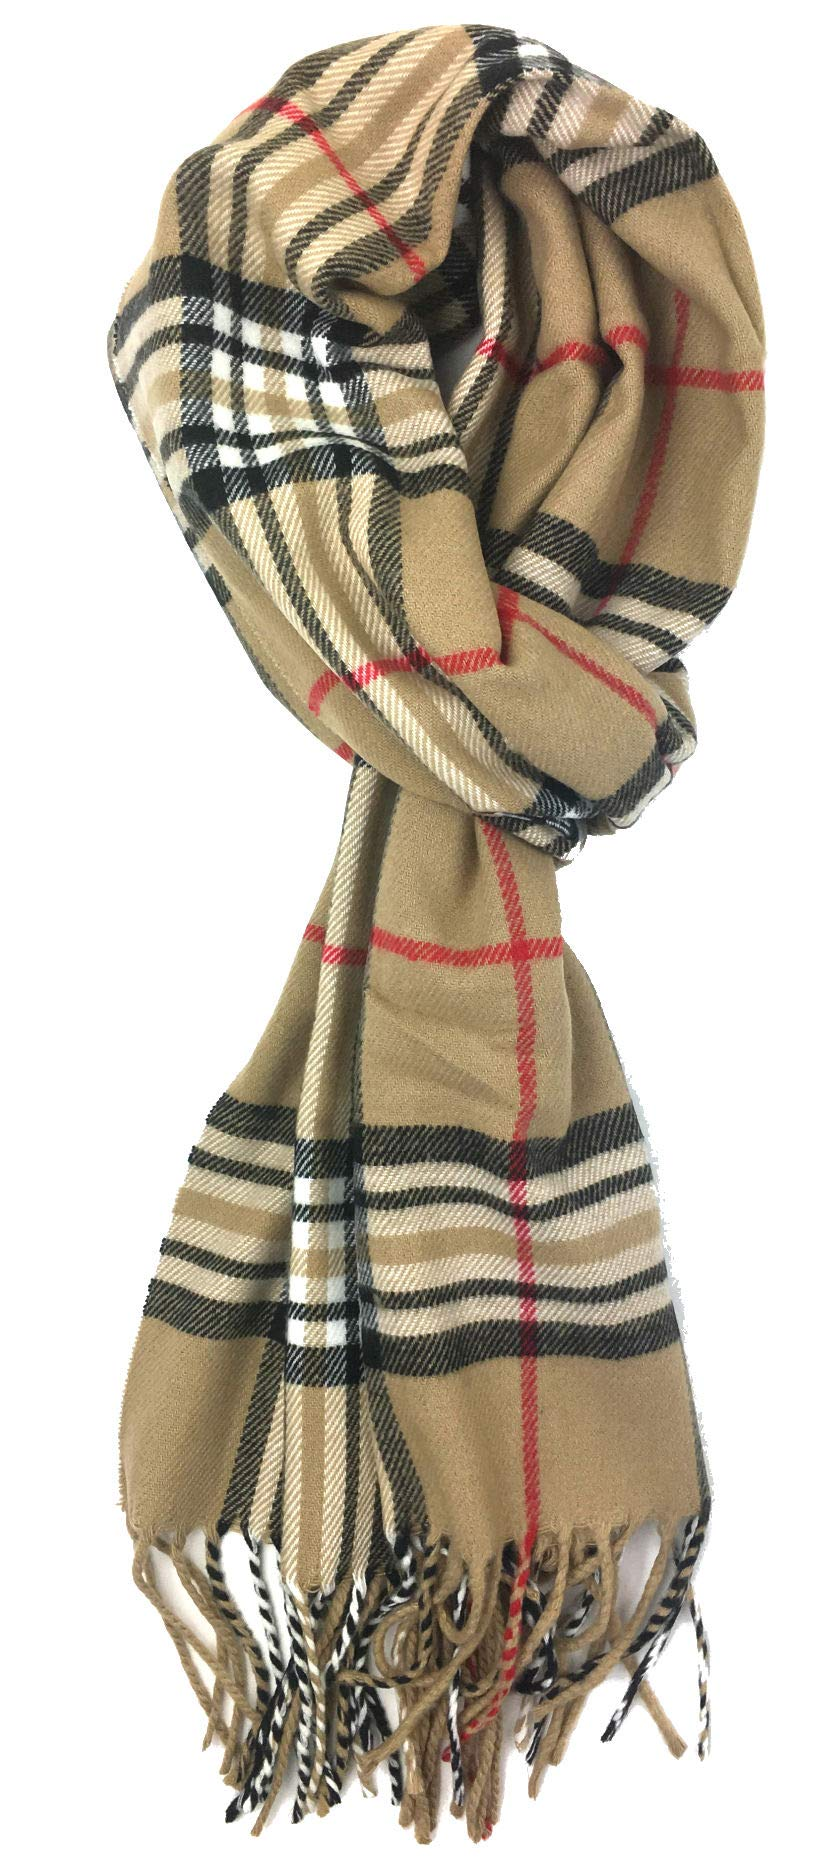 Plum Feathers Super Soft Luxurious Cashmere Feel Winter Scarf (Classic Camel Plaid) by Plum Feathers